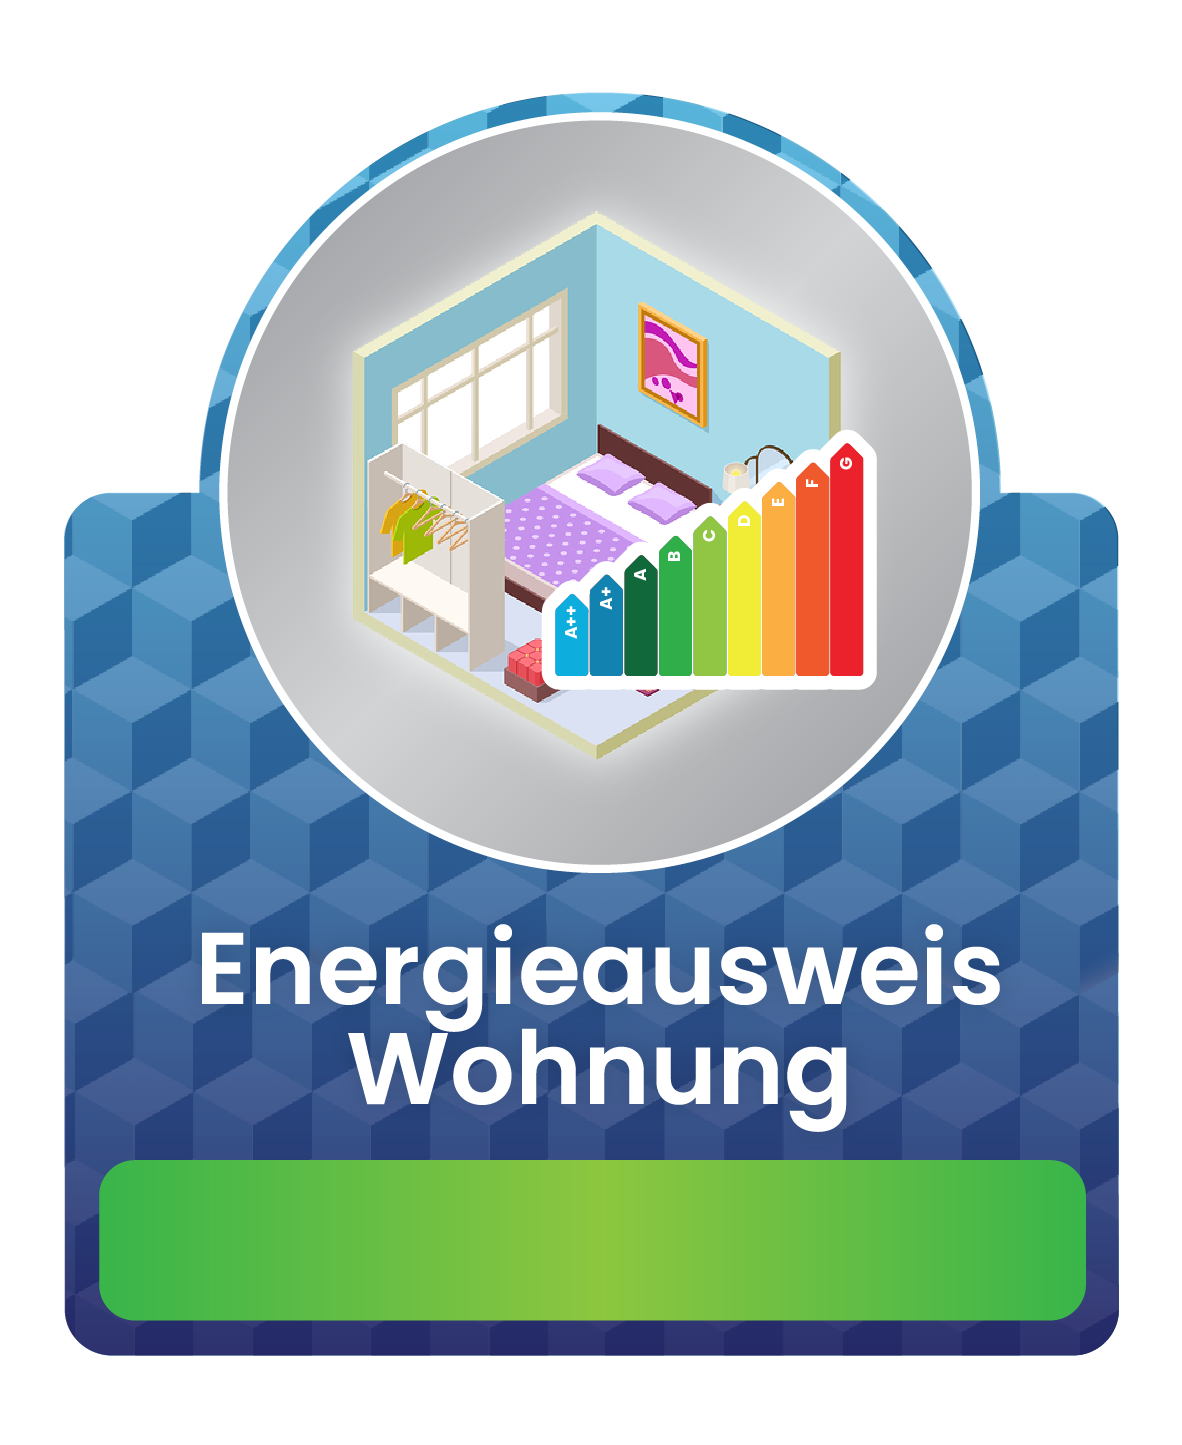 Energieausweis Wohnung